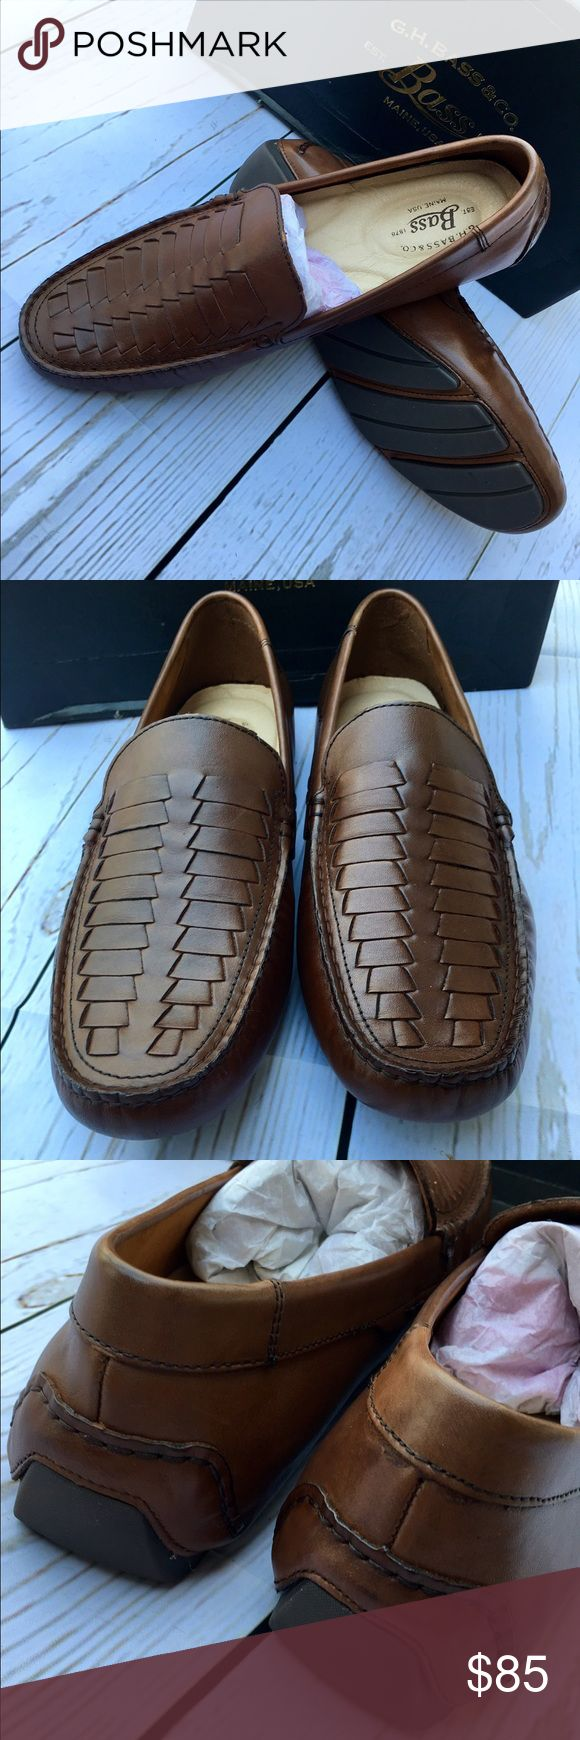 🇺🇸TODAY ONLY🇺🇸NIB MEN'S G.H.BASS DRIVING SHOES True to size. Genuine leather. Bass Shoes Loafers & Slip-Ons